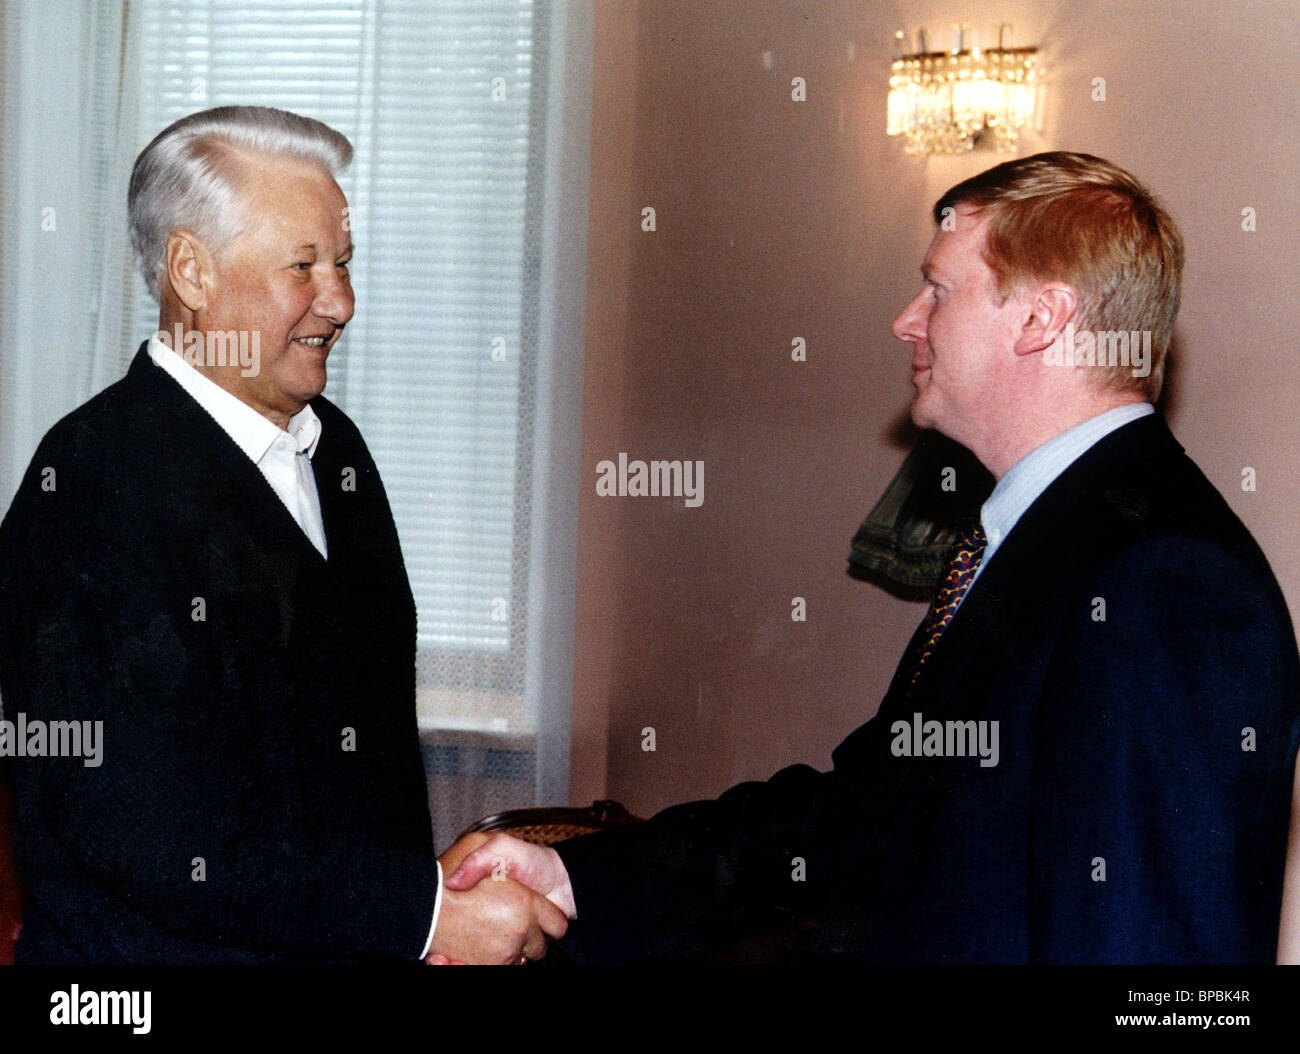 The first family photo of Chubais shocked everyone 24.01.2012 32